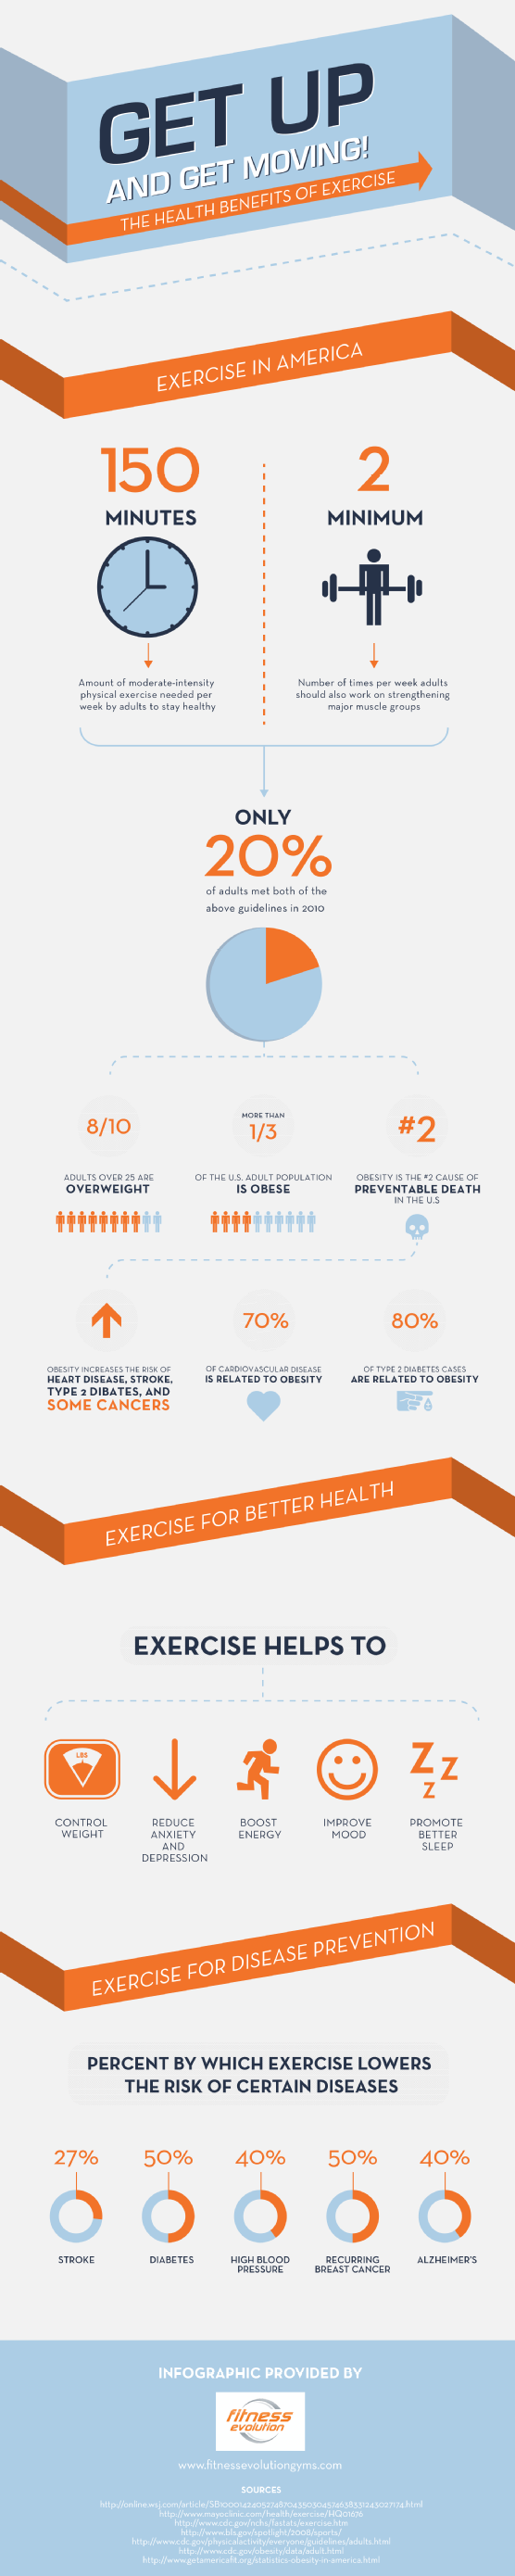 get-up-and-get-moving-the-health-benefits-of-exercise_50e1db2a5fb02